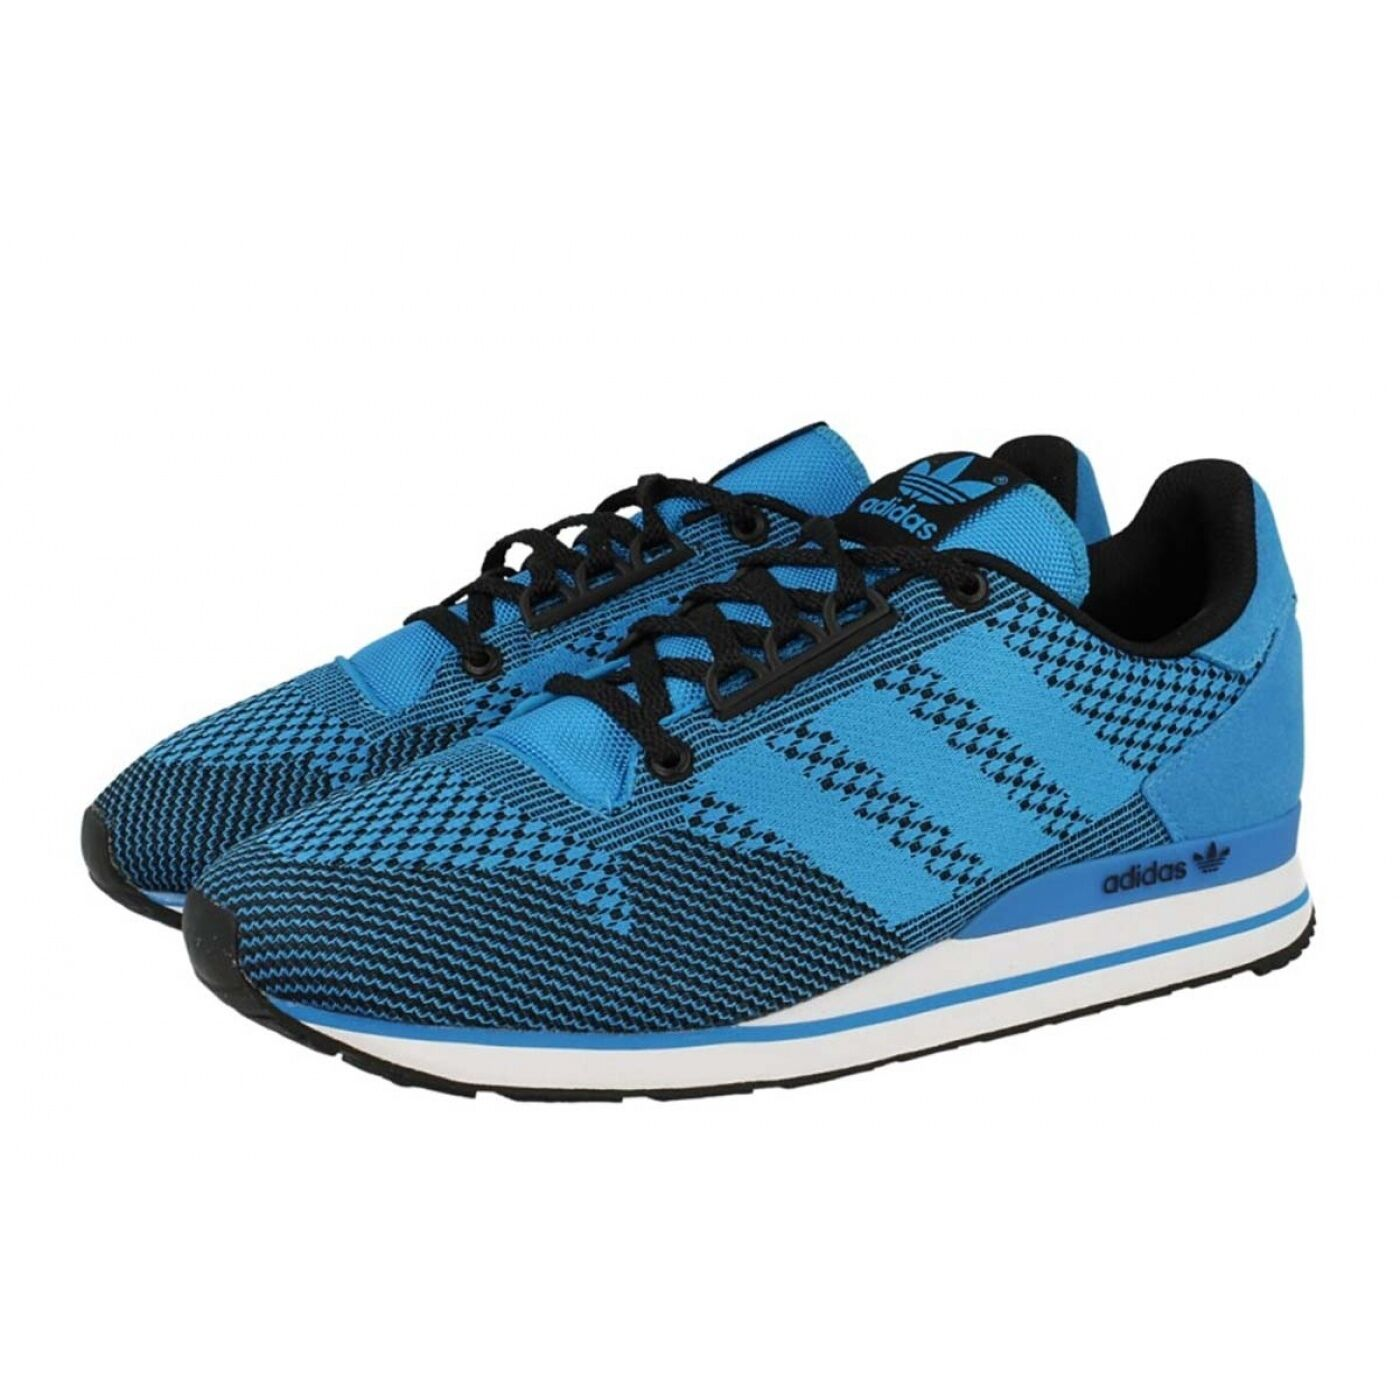 ADIDAS ORIGINALS ZX 500 OG WEAVE Trainer Sneakers MENS 10.5 RUNNING blueE BLACK